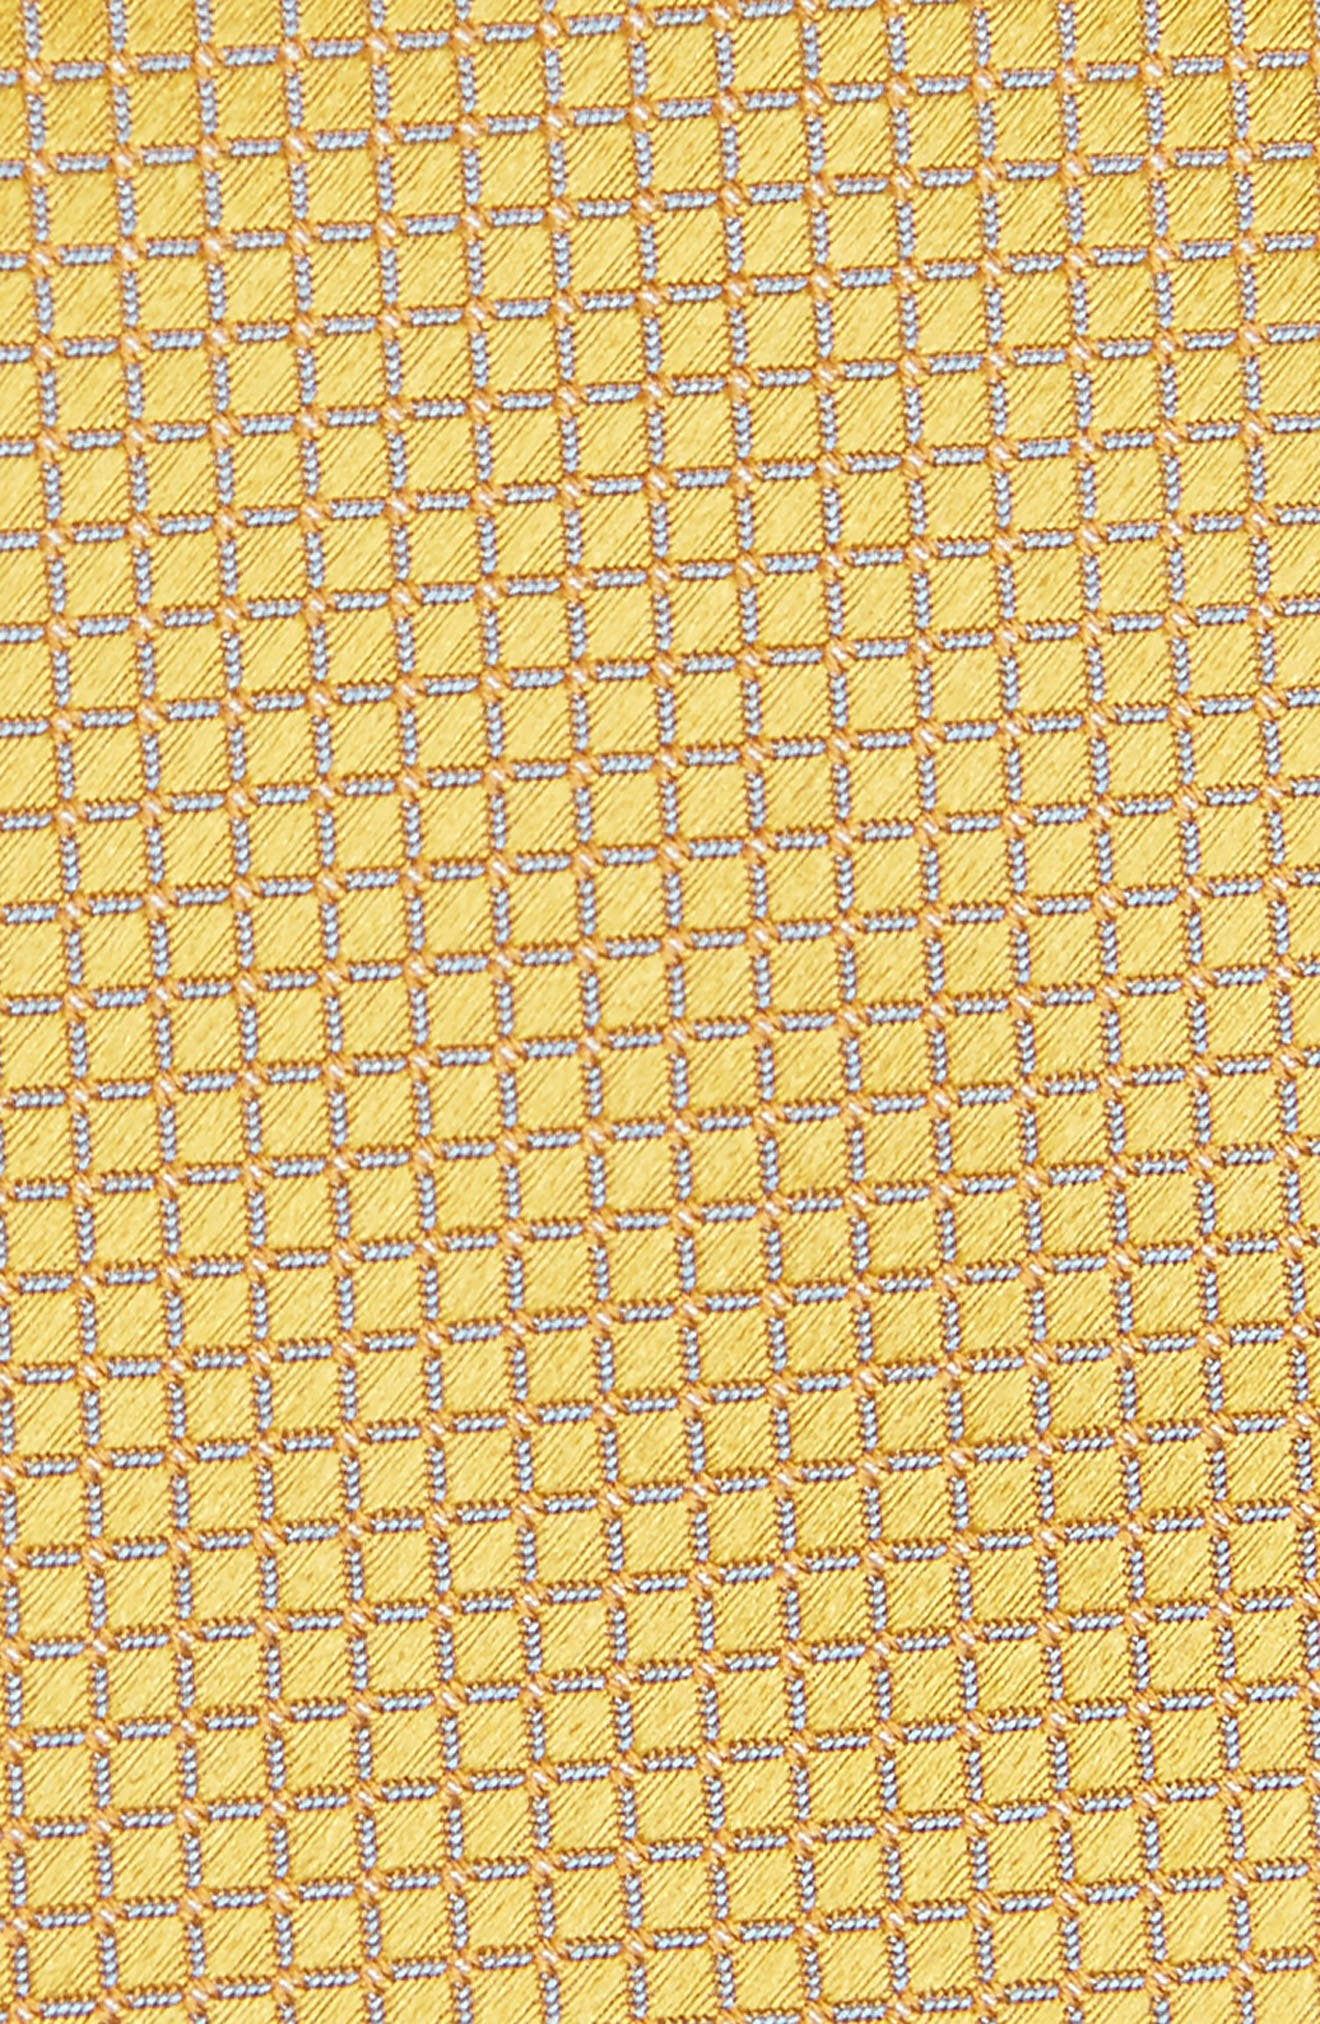 Grid Silk Tie,                             Alternate thumbnail 2, color,                             Gold